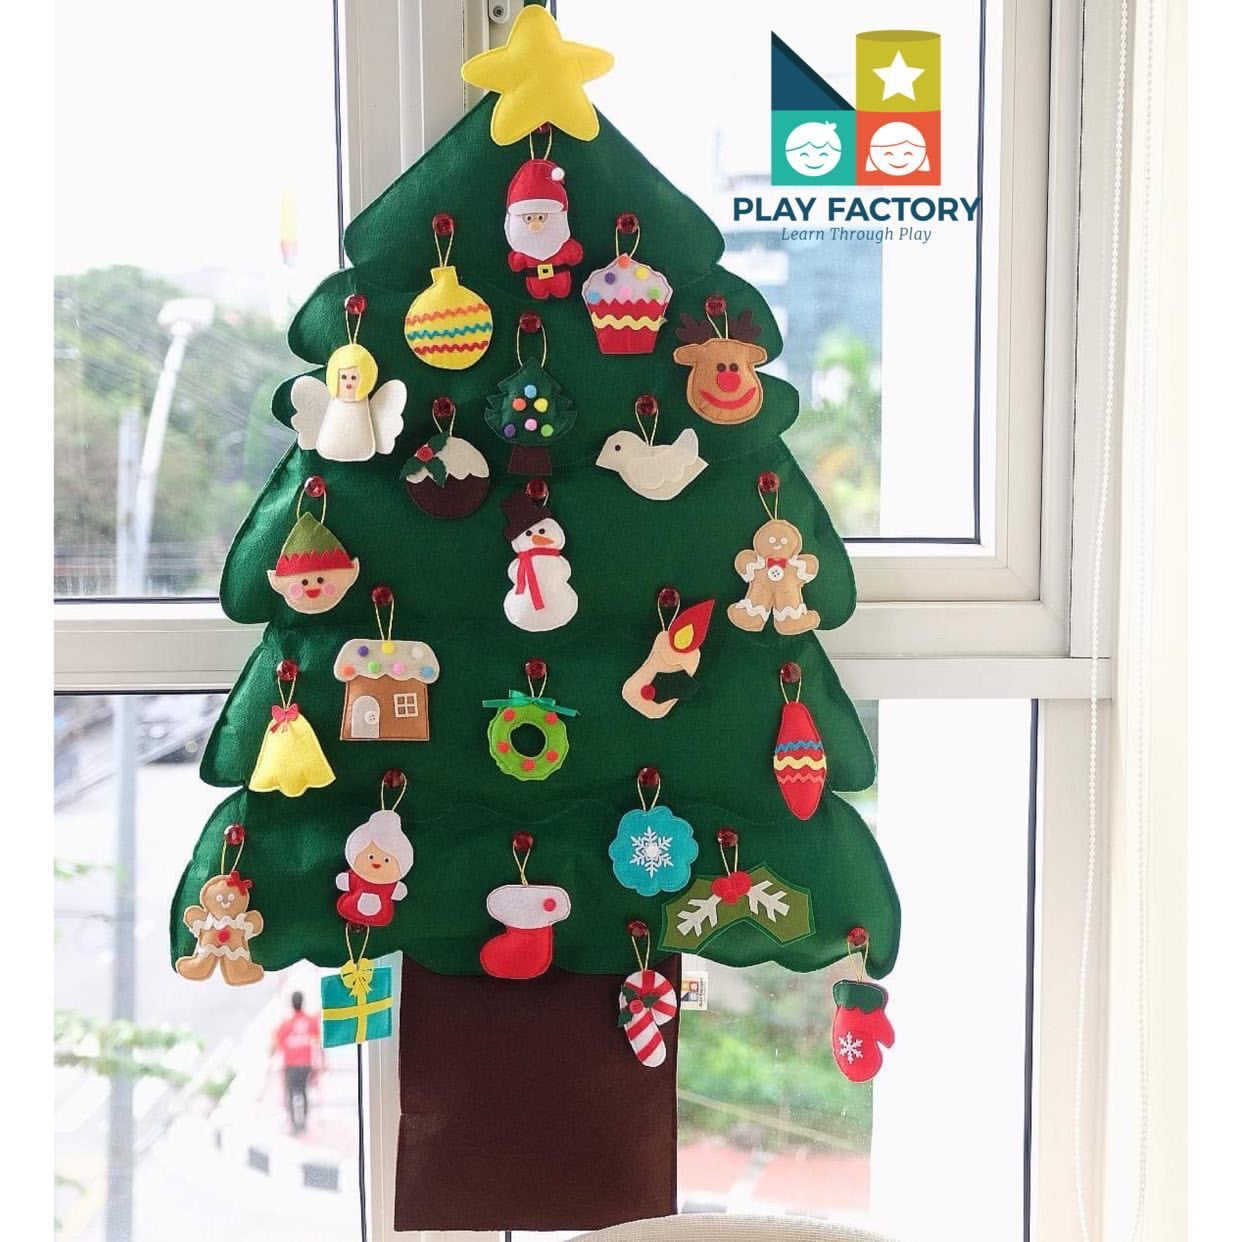 Play Factory Wall/Hanging Christmas Tree